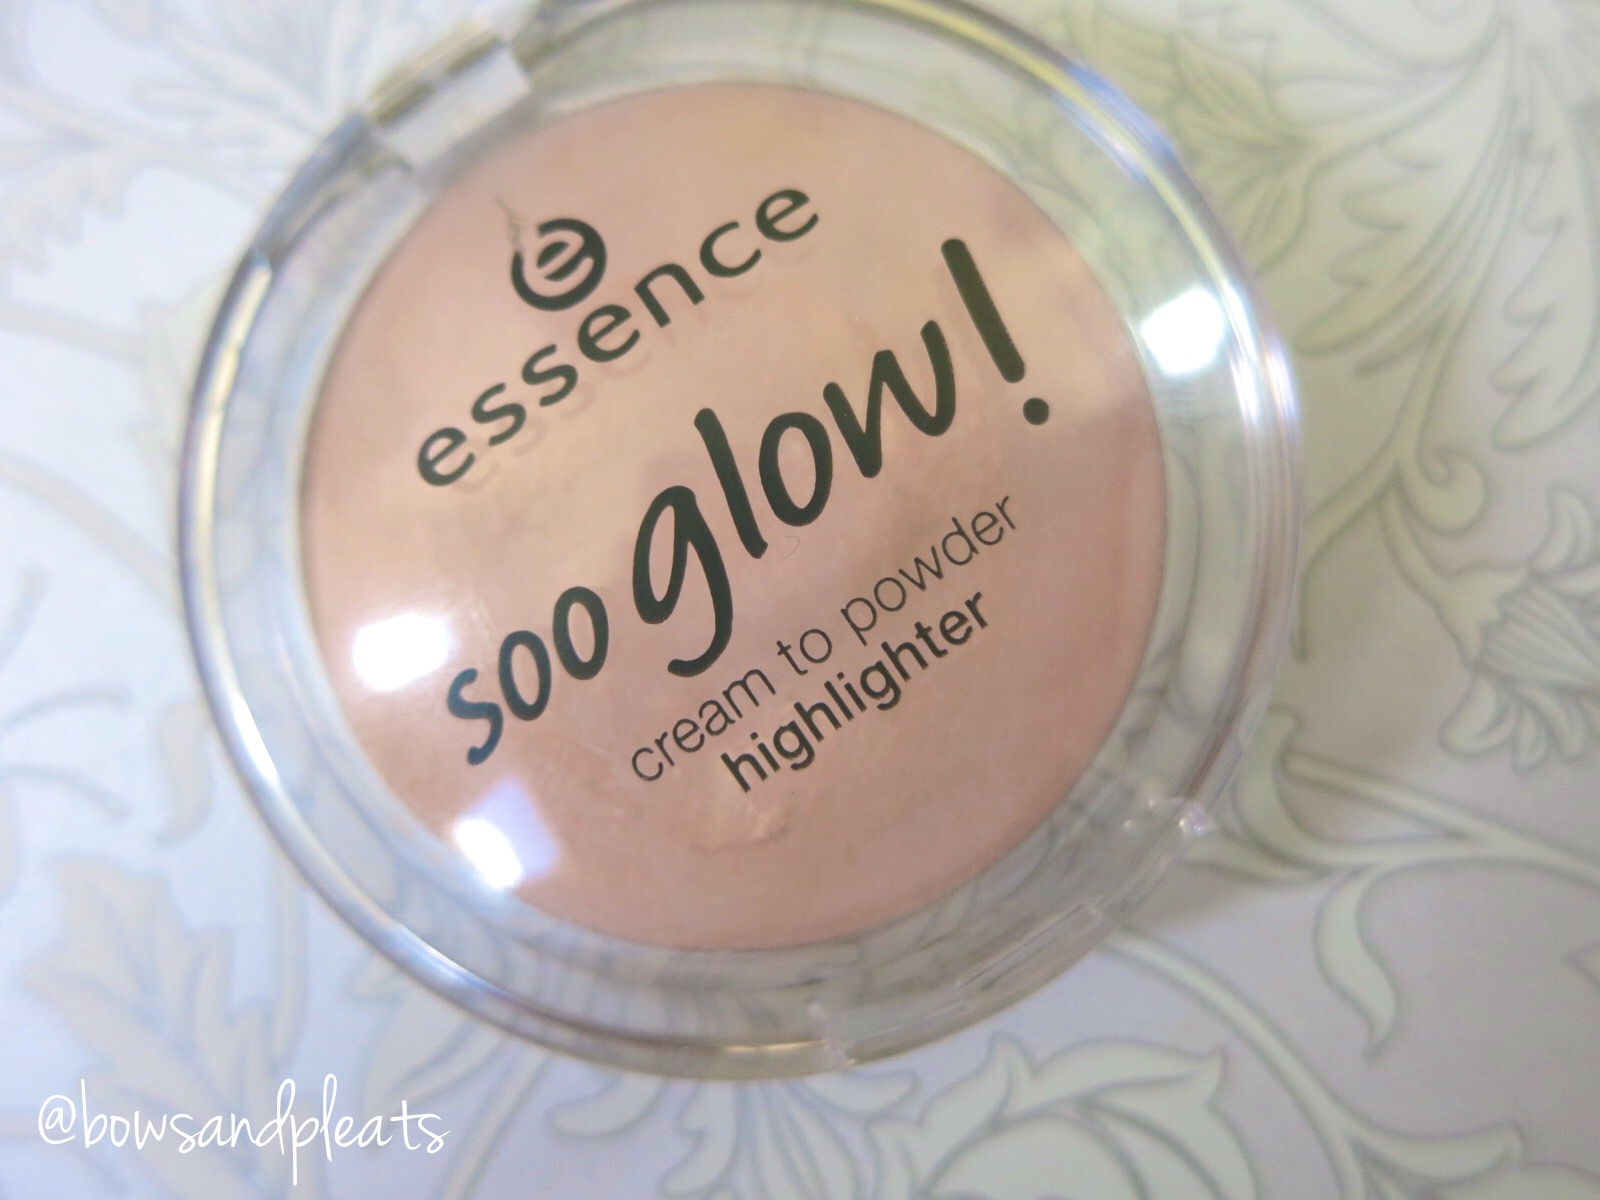 Essence Cosmetics Soo Glow Cream to Powder Highlighter Bright Up Your Life